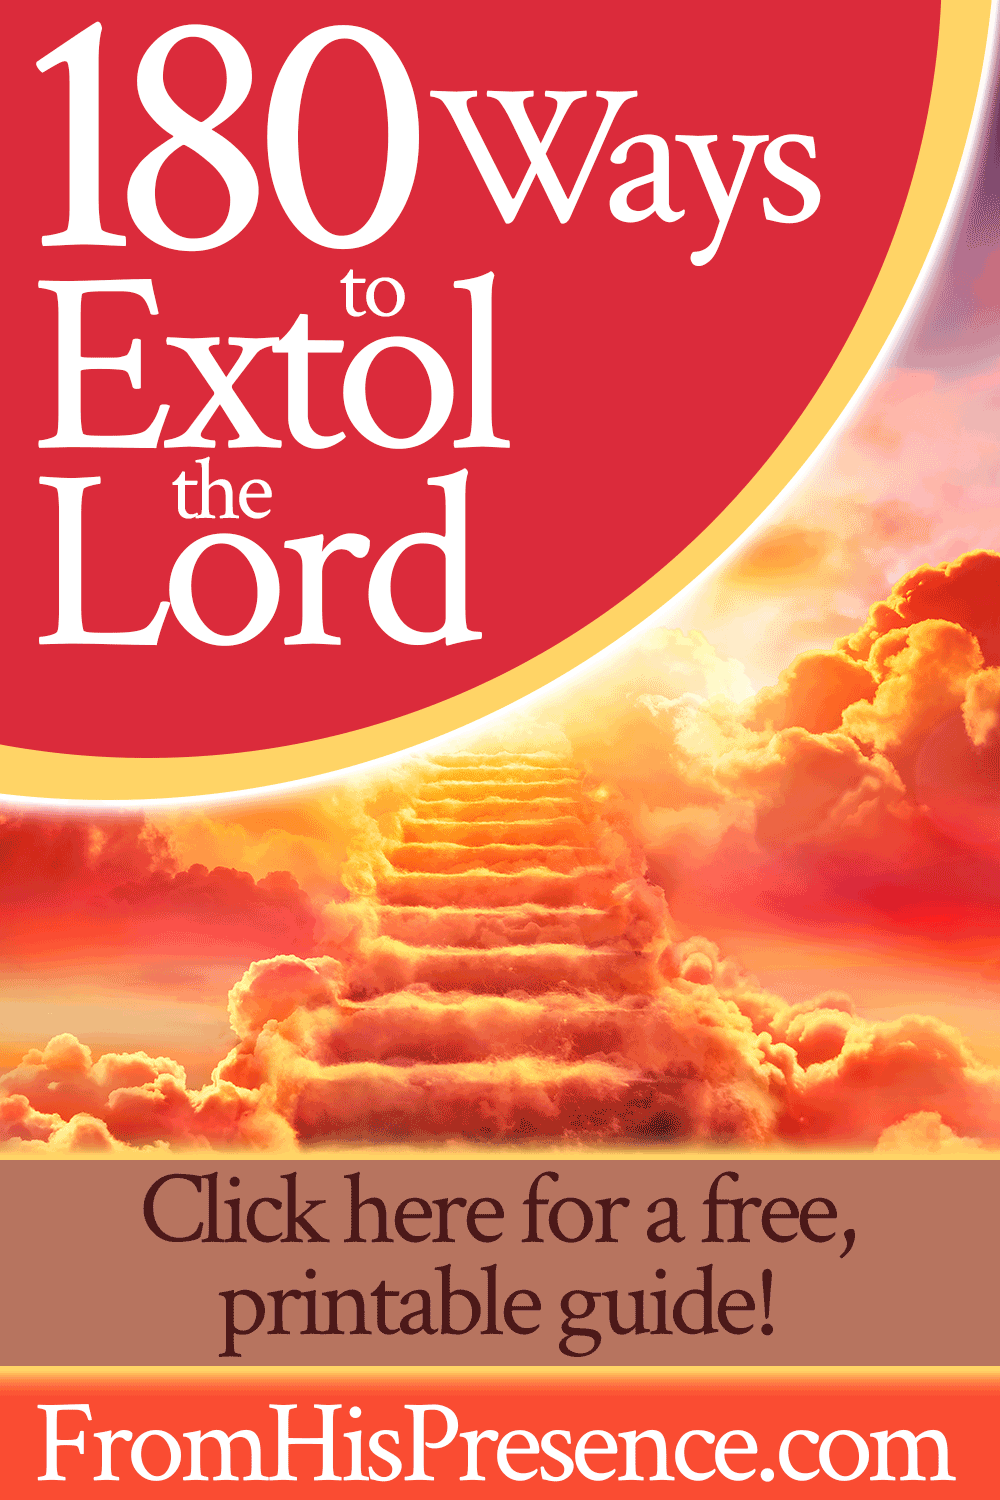 180 Ways to Extol the Lord with free printable guide   by Jamie Rohrbaugh   FromHisPresence.com